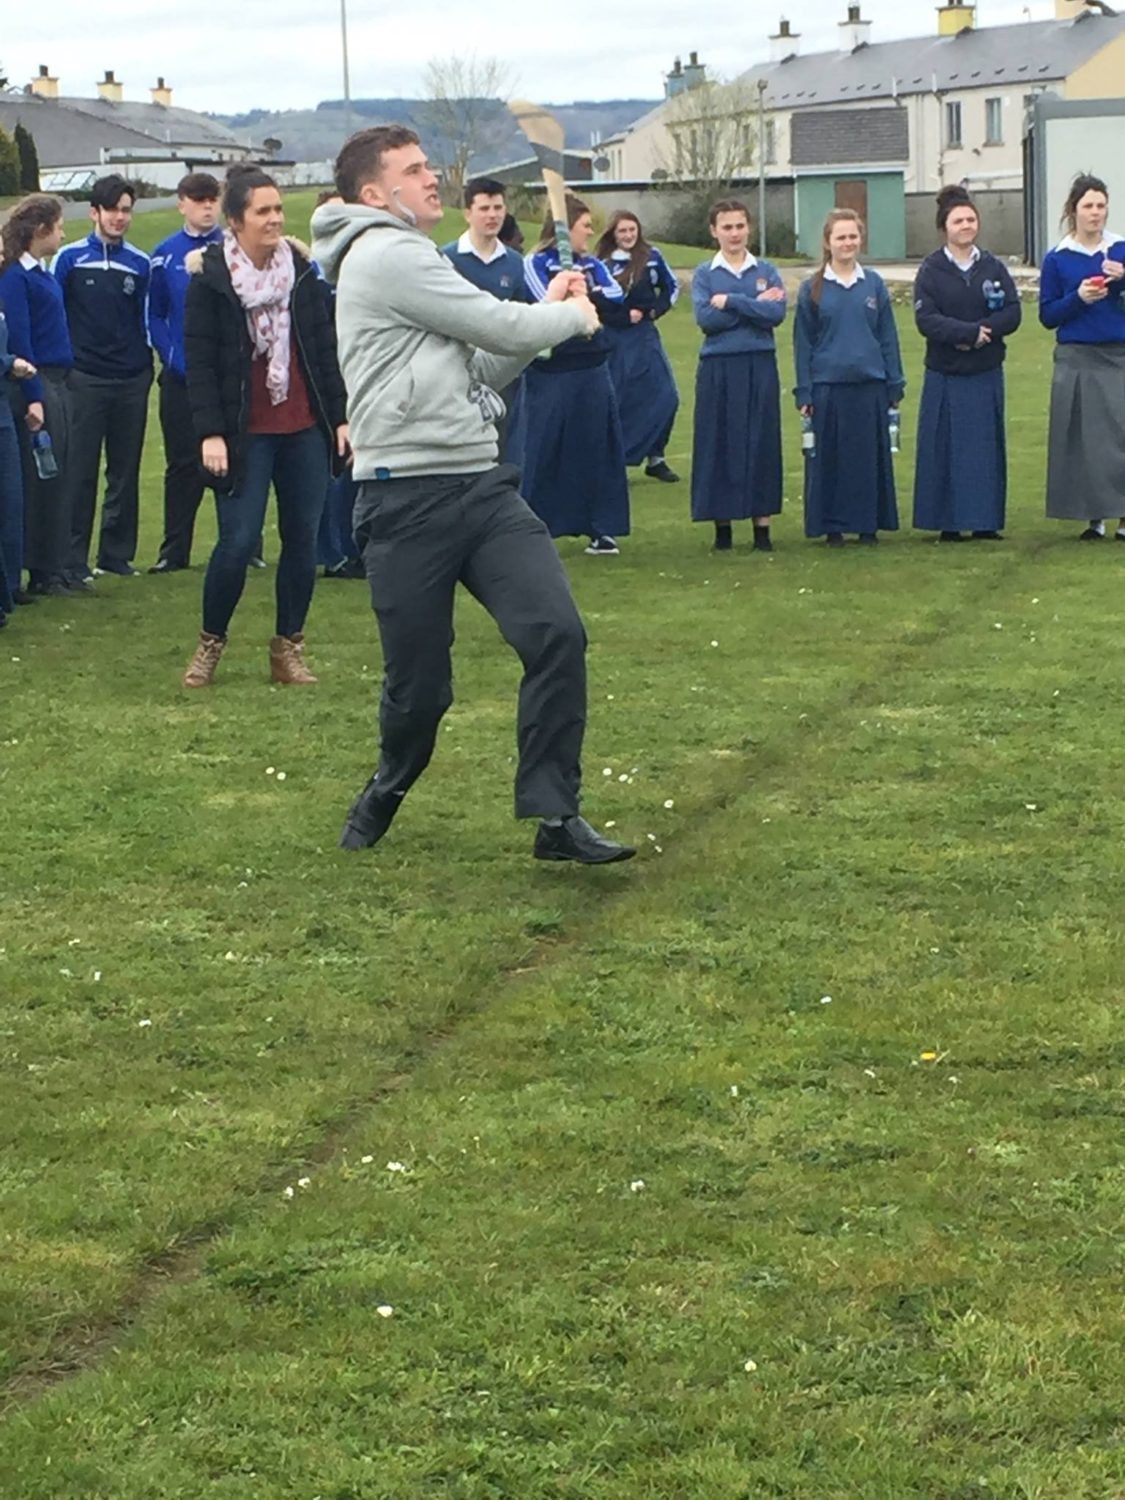 2016 Active Schools Week at Desmond College: ActiveTuesday 19th April: Long Puck Competition